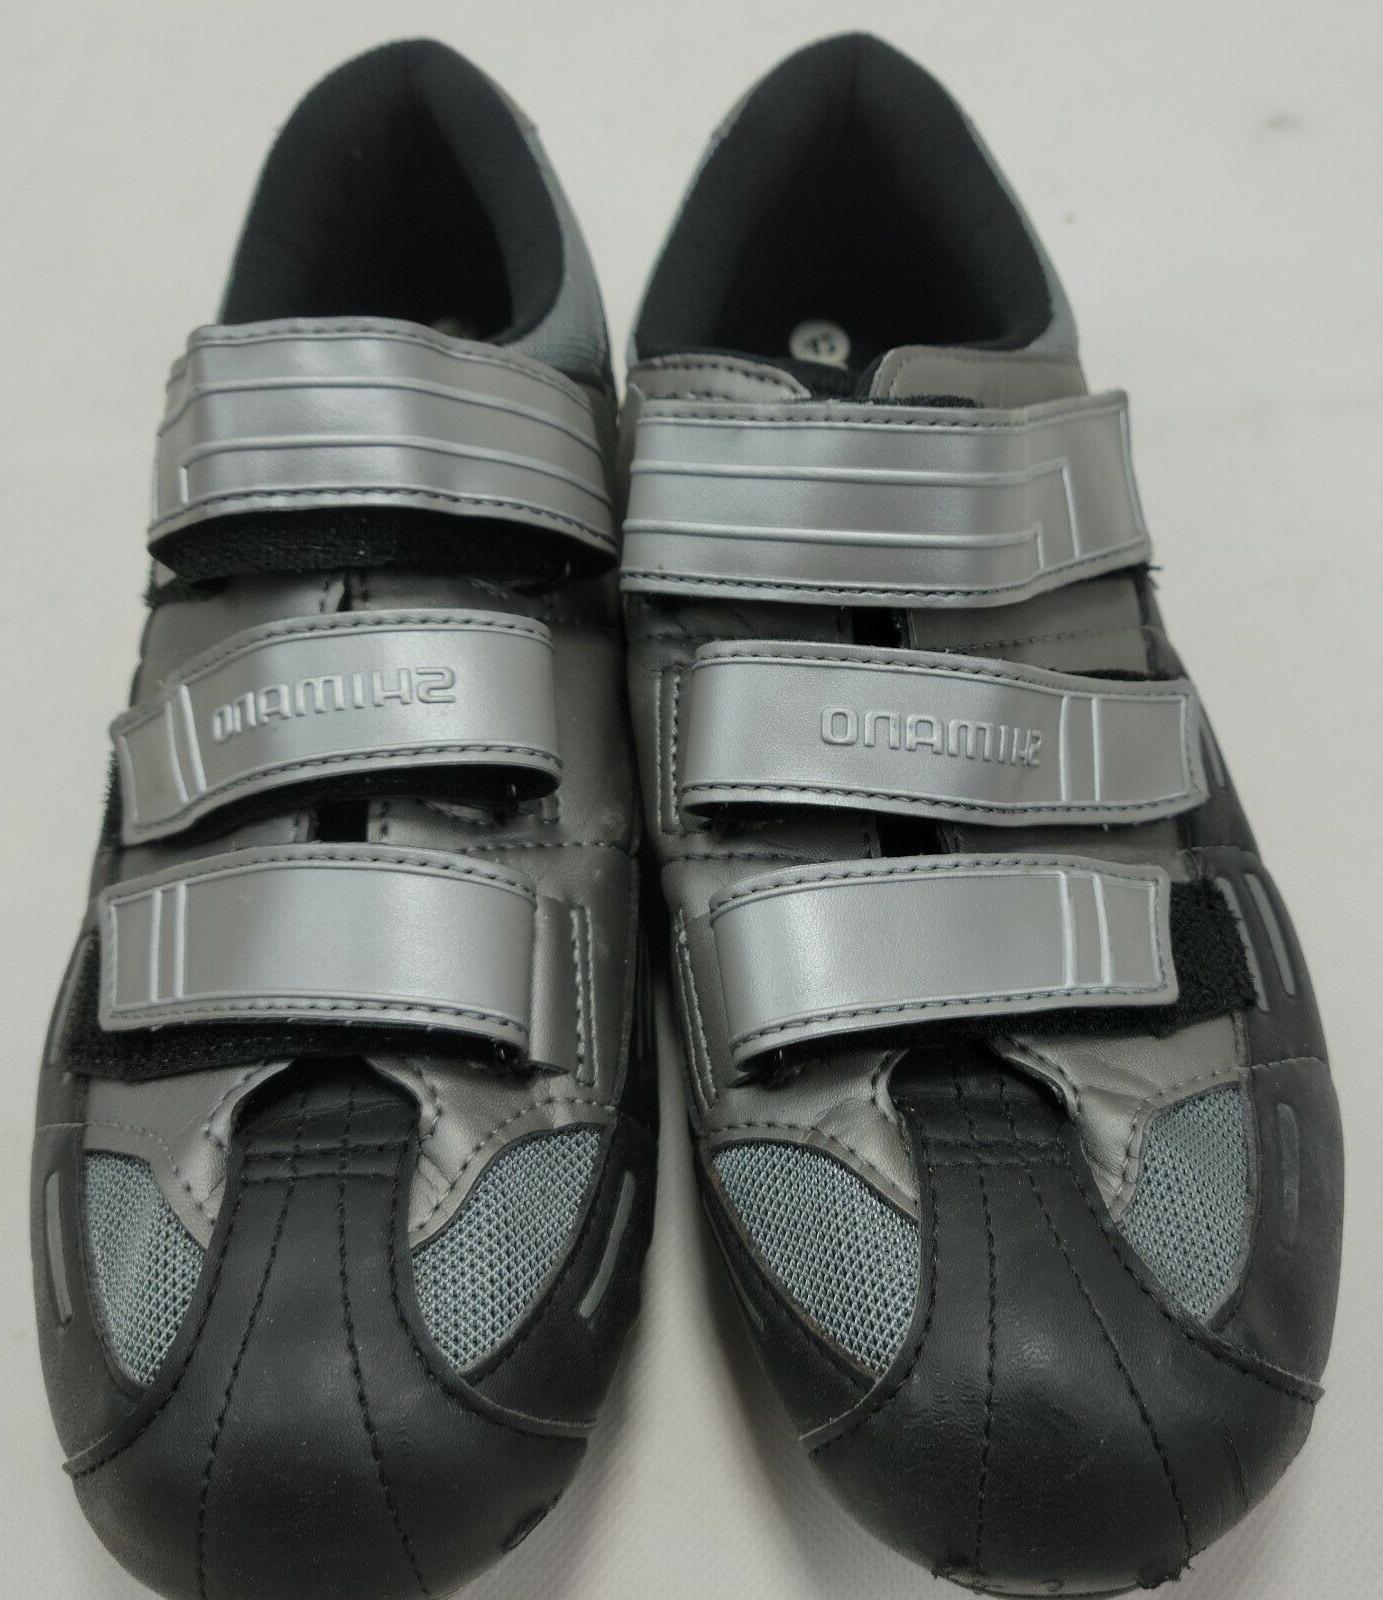 In Strap Cycling Shoes